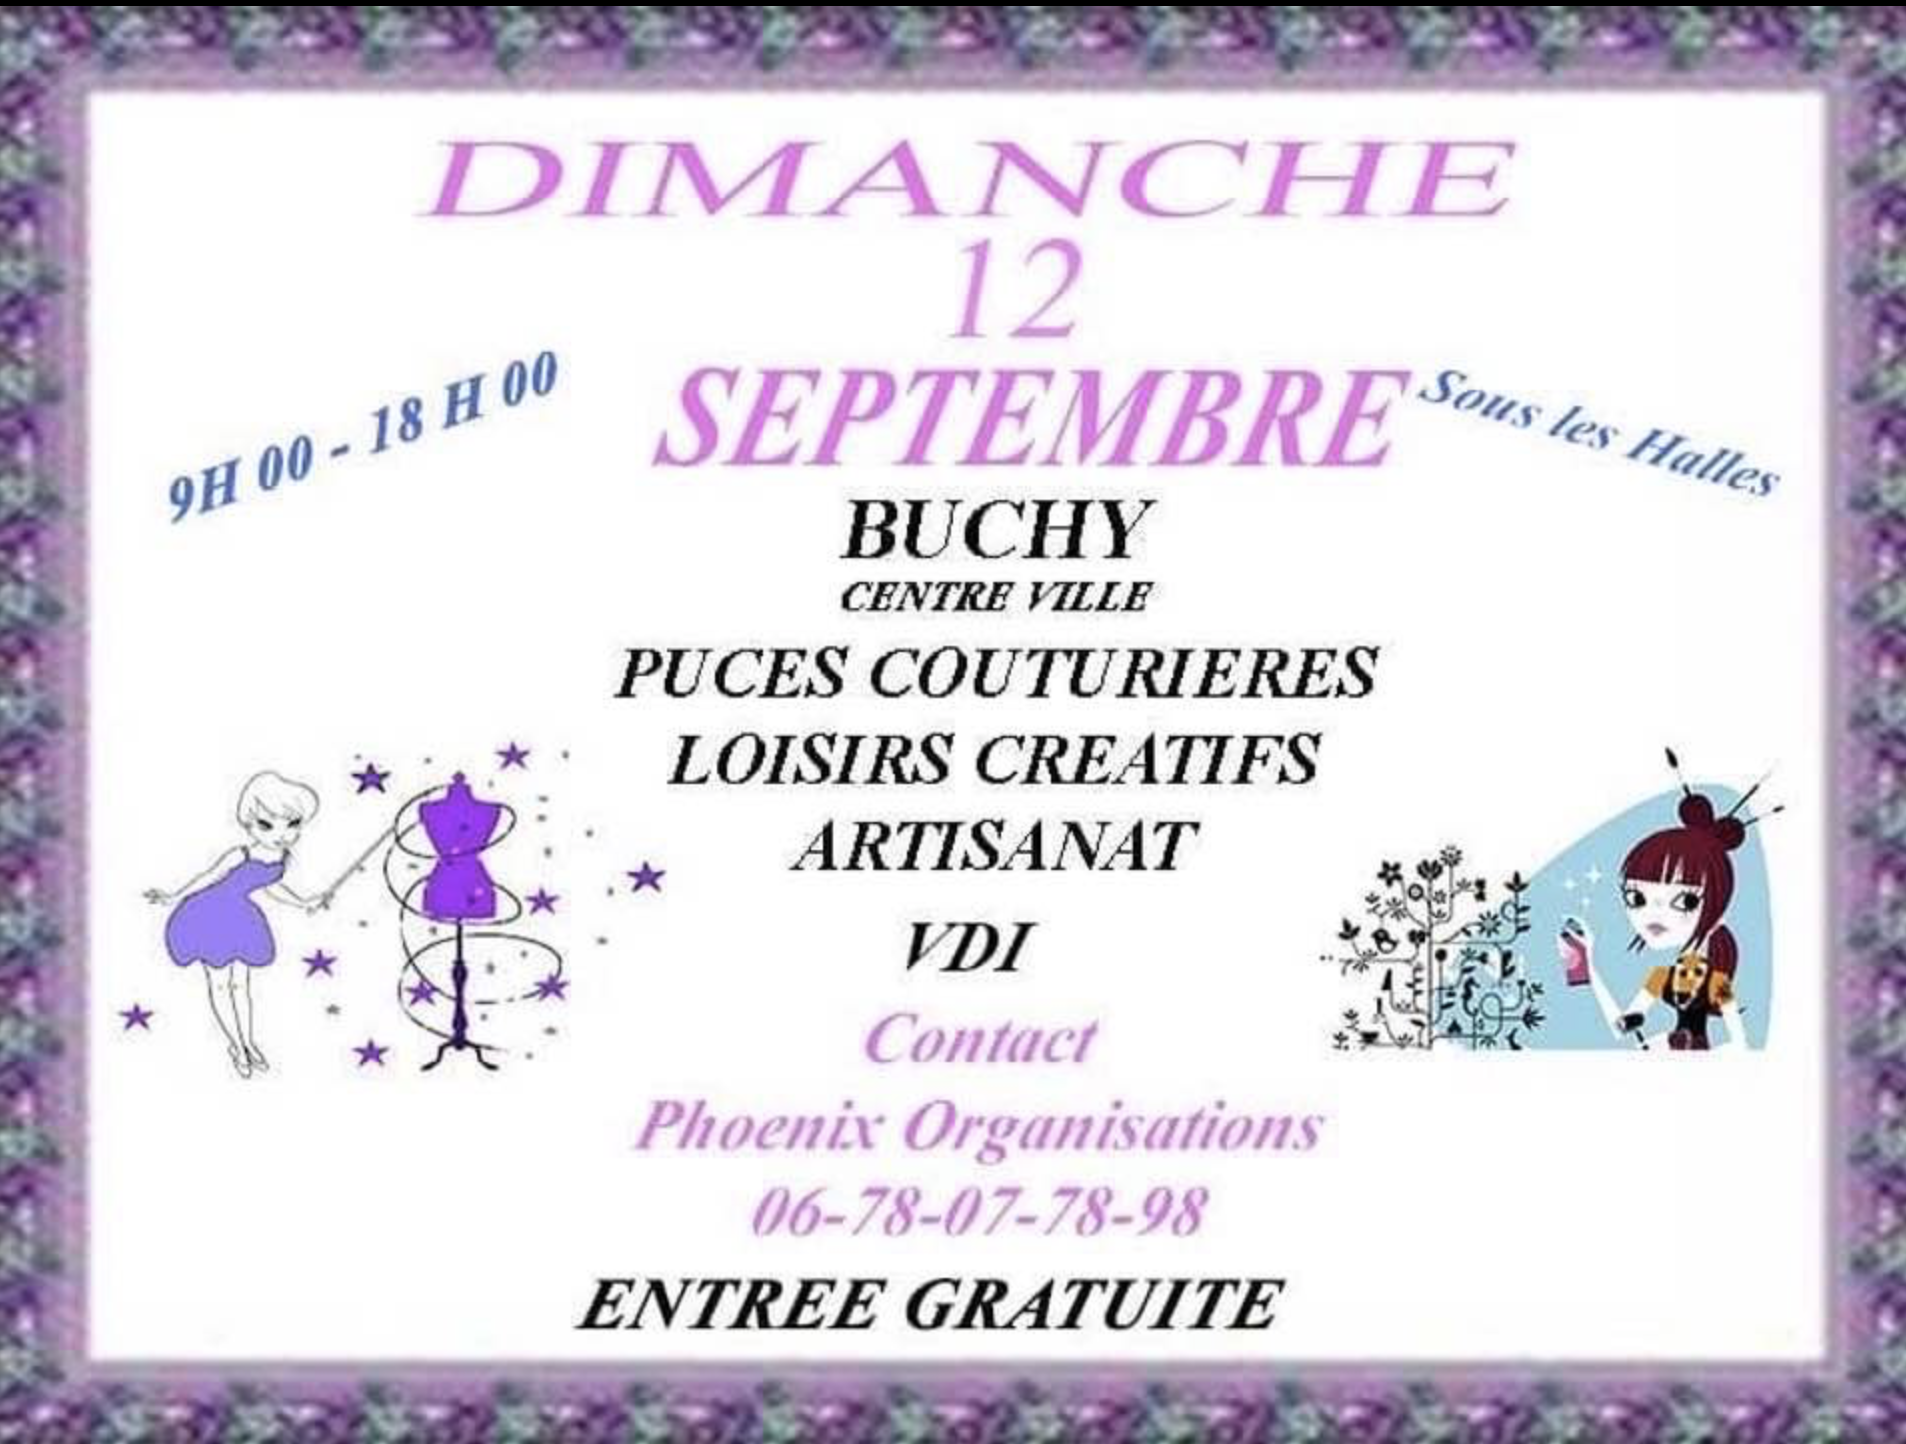 Puces couturie res